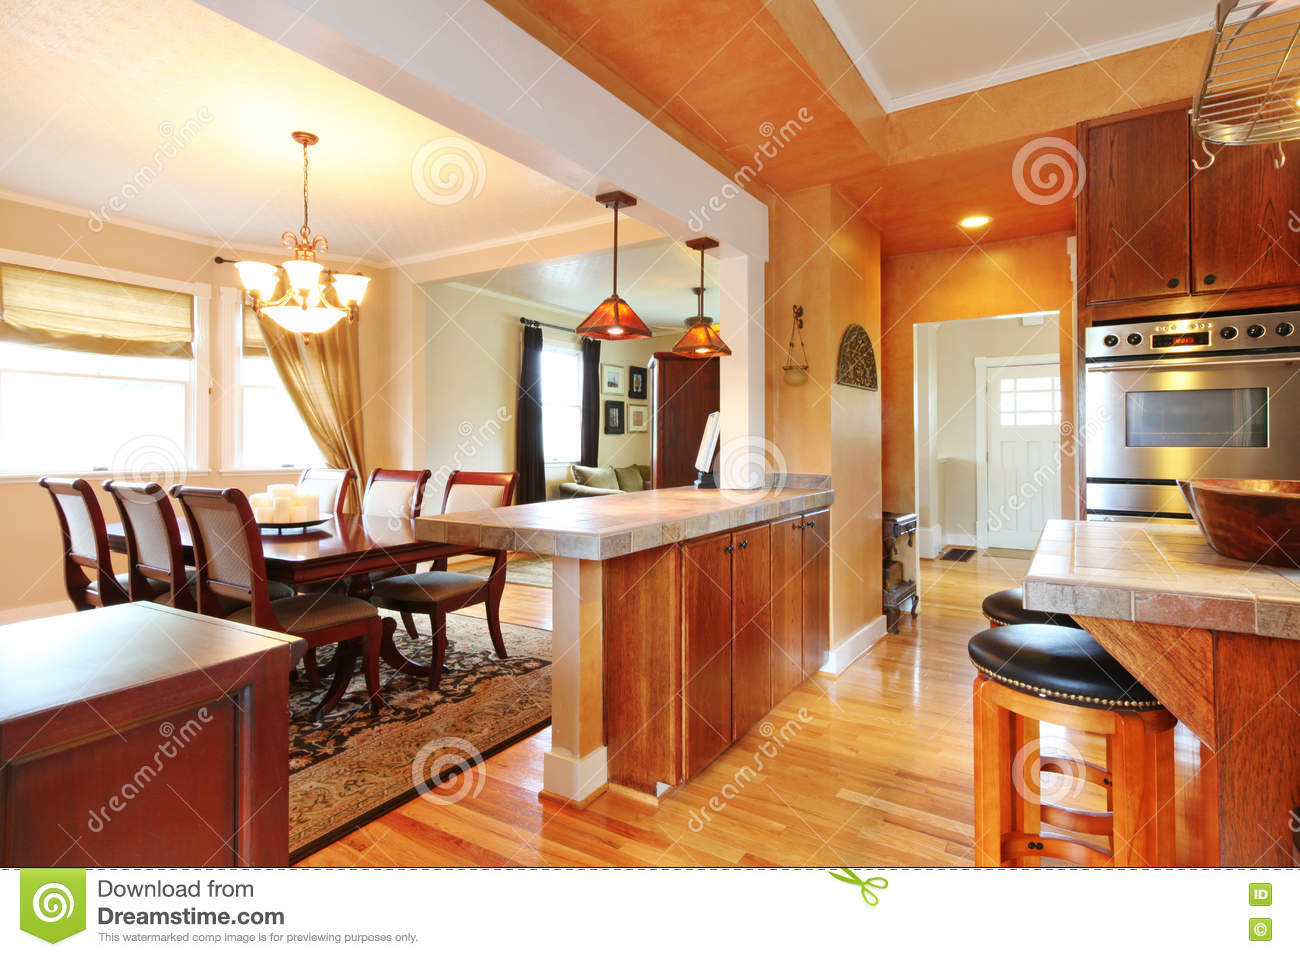 House Interior With Open Wall Design View Of Dining Table